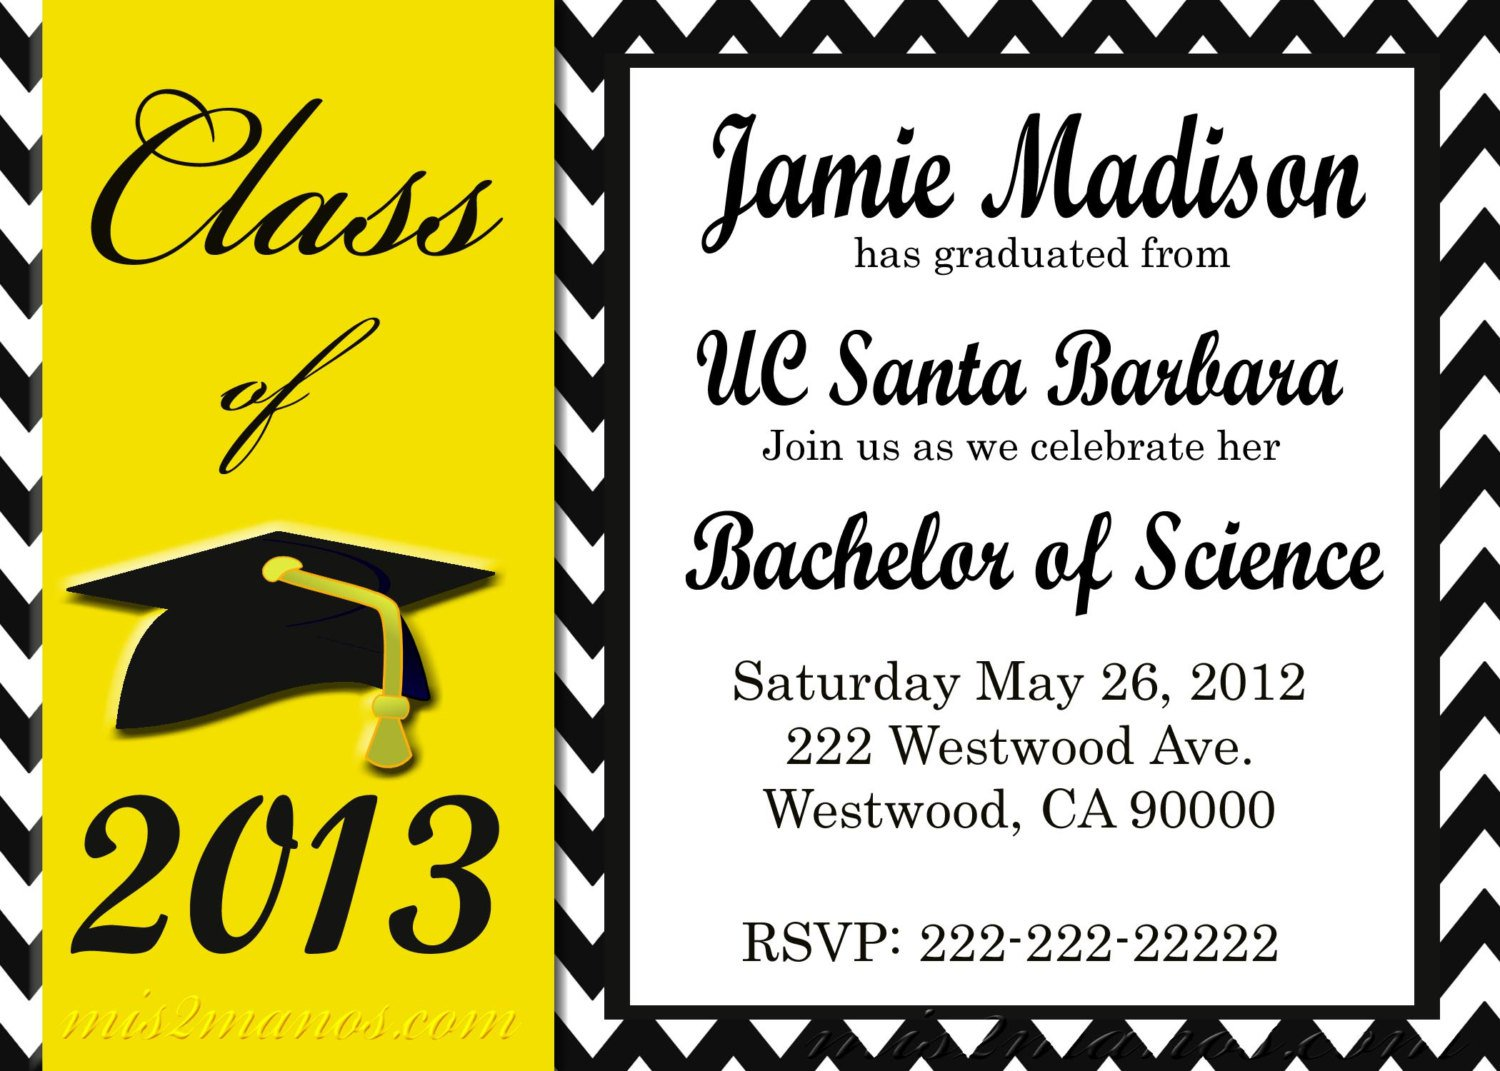 Printable Graduation Invitations 2013 Free – Printable Graduation Invitation Templates